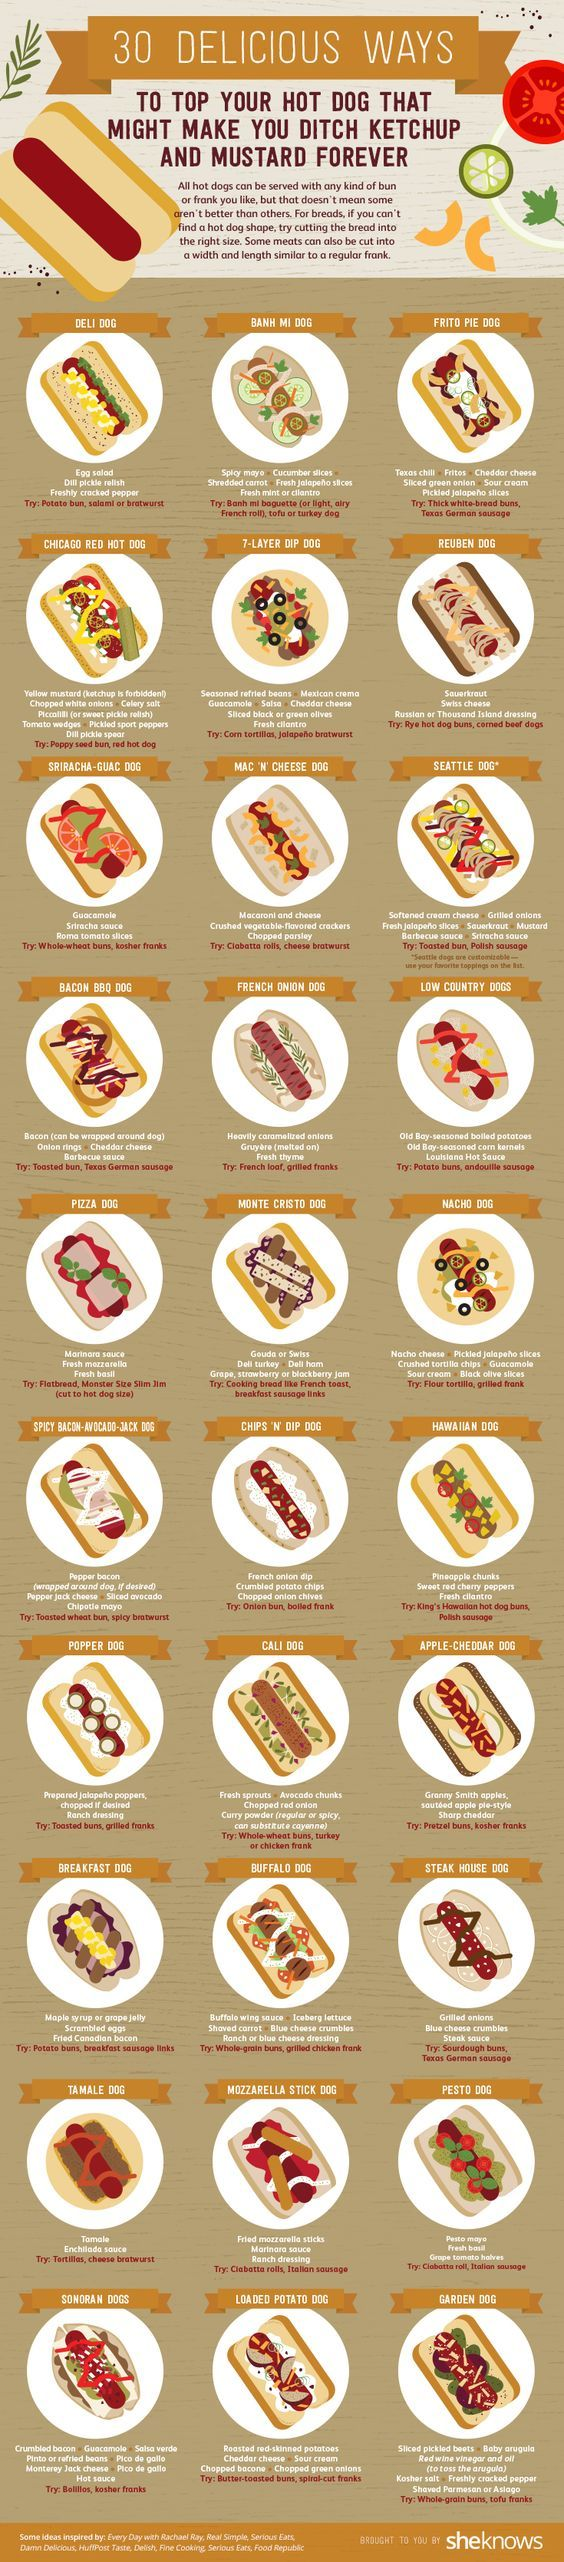 Hot Dog Toppings Infographic - plain old yellow mustard pales in comparison! | SheKnows